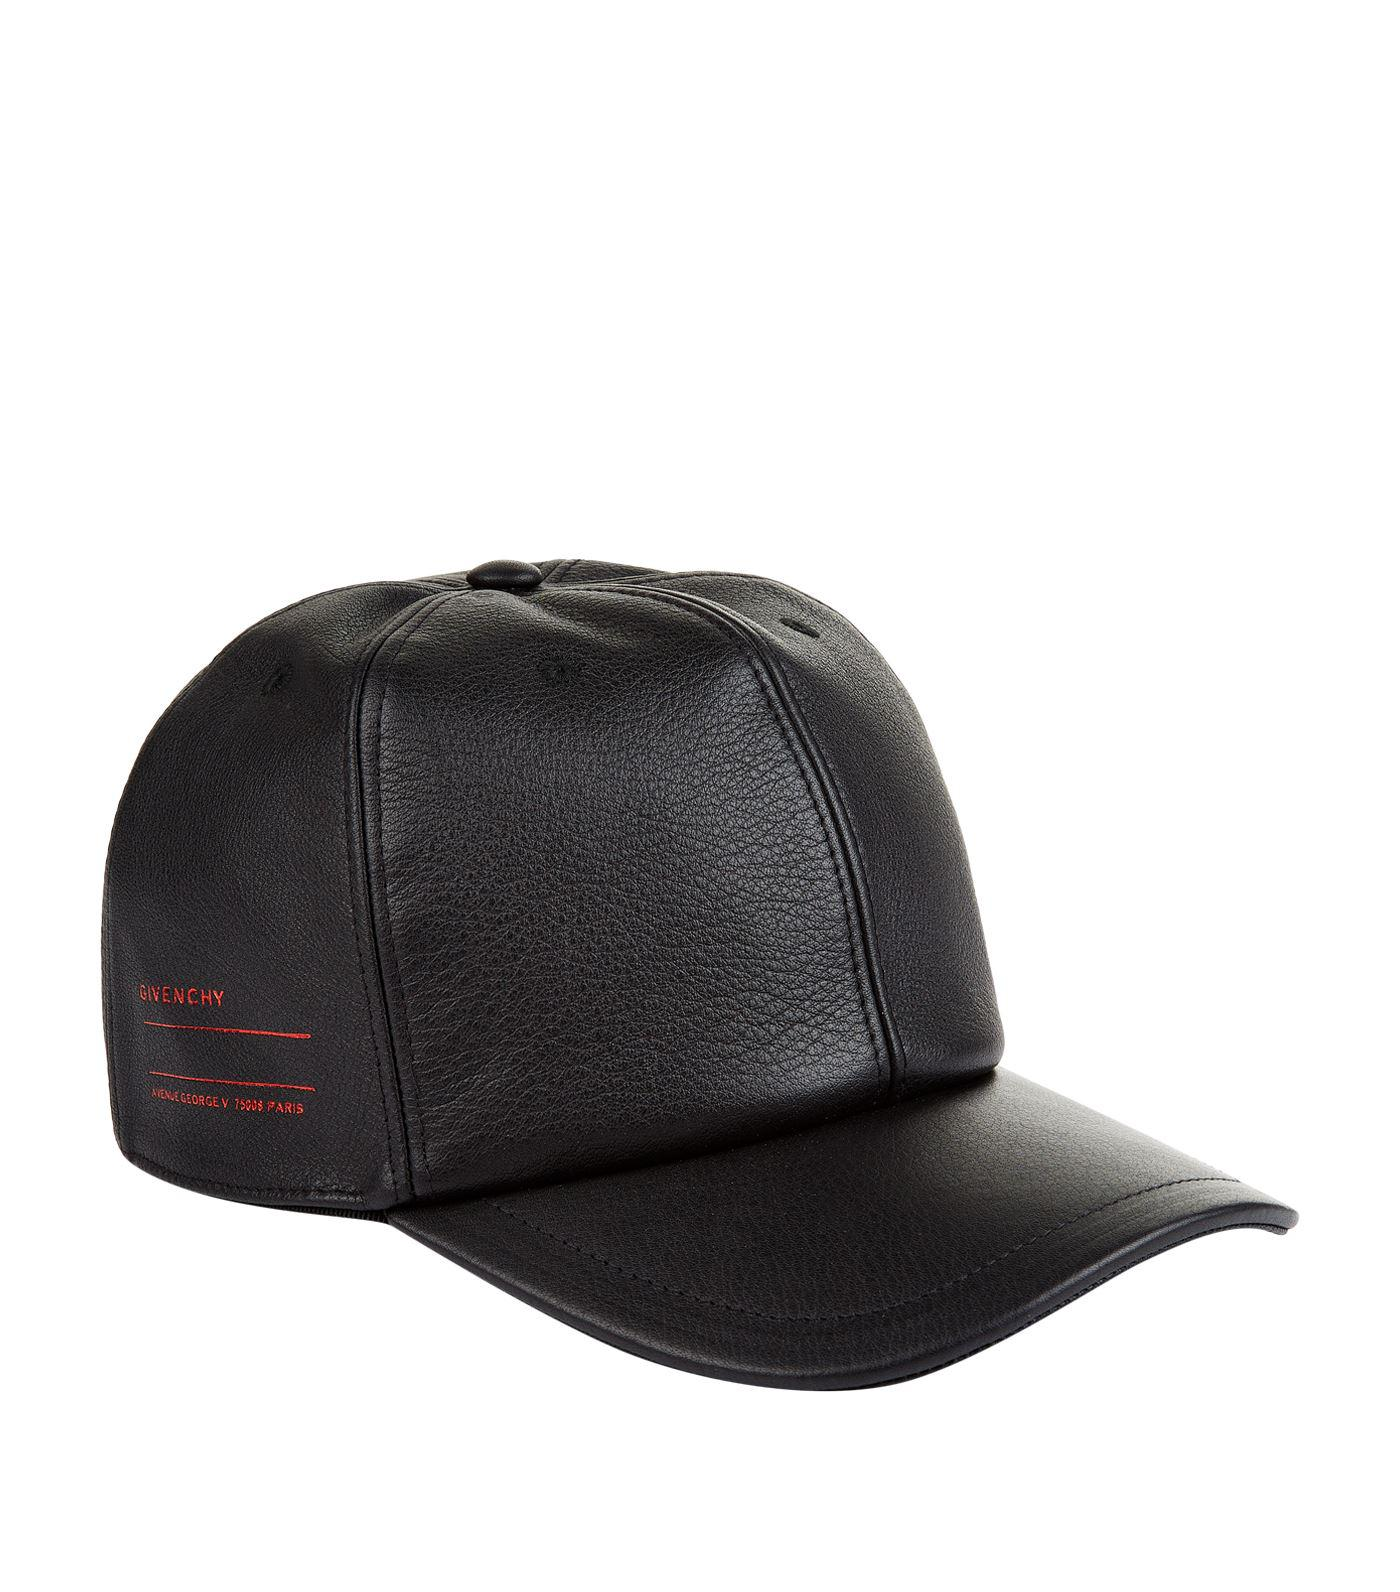 Givenchy Leather Address Logo Cap in Black for Men - Lyst 1855ec08f94